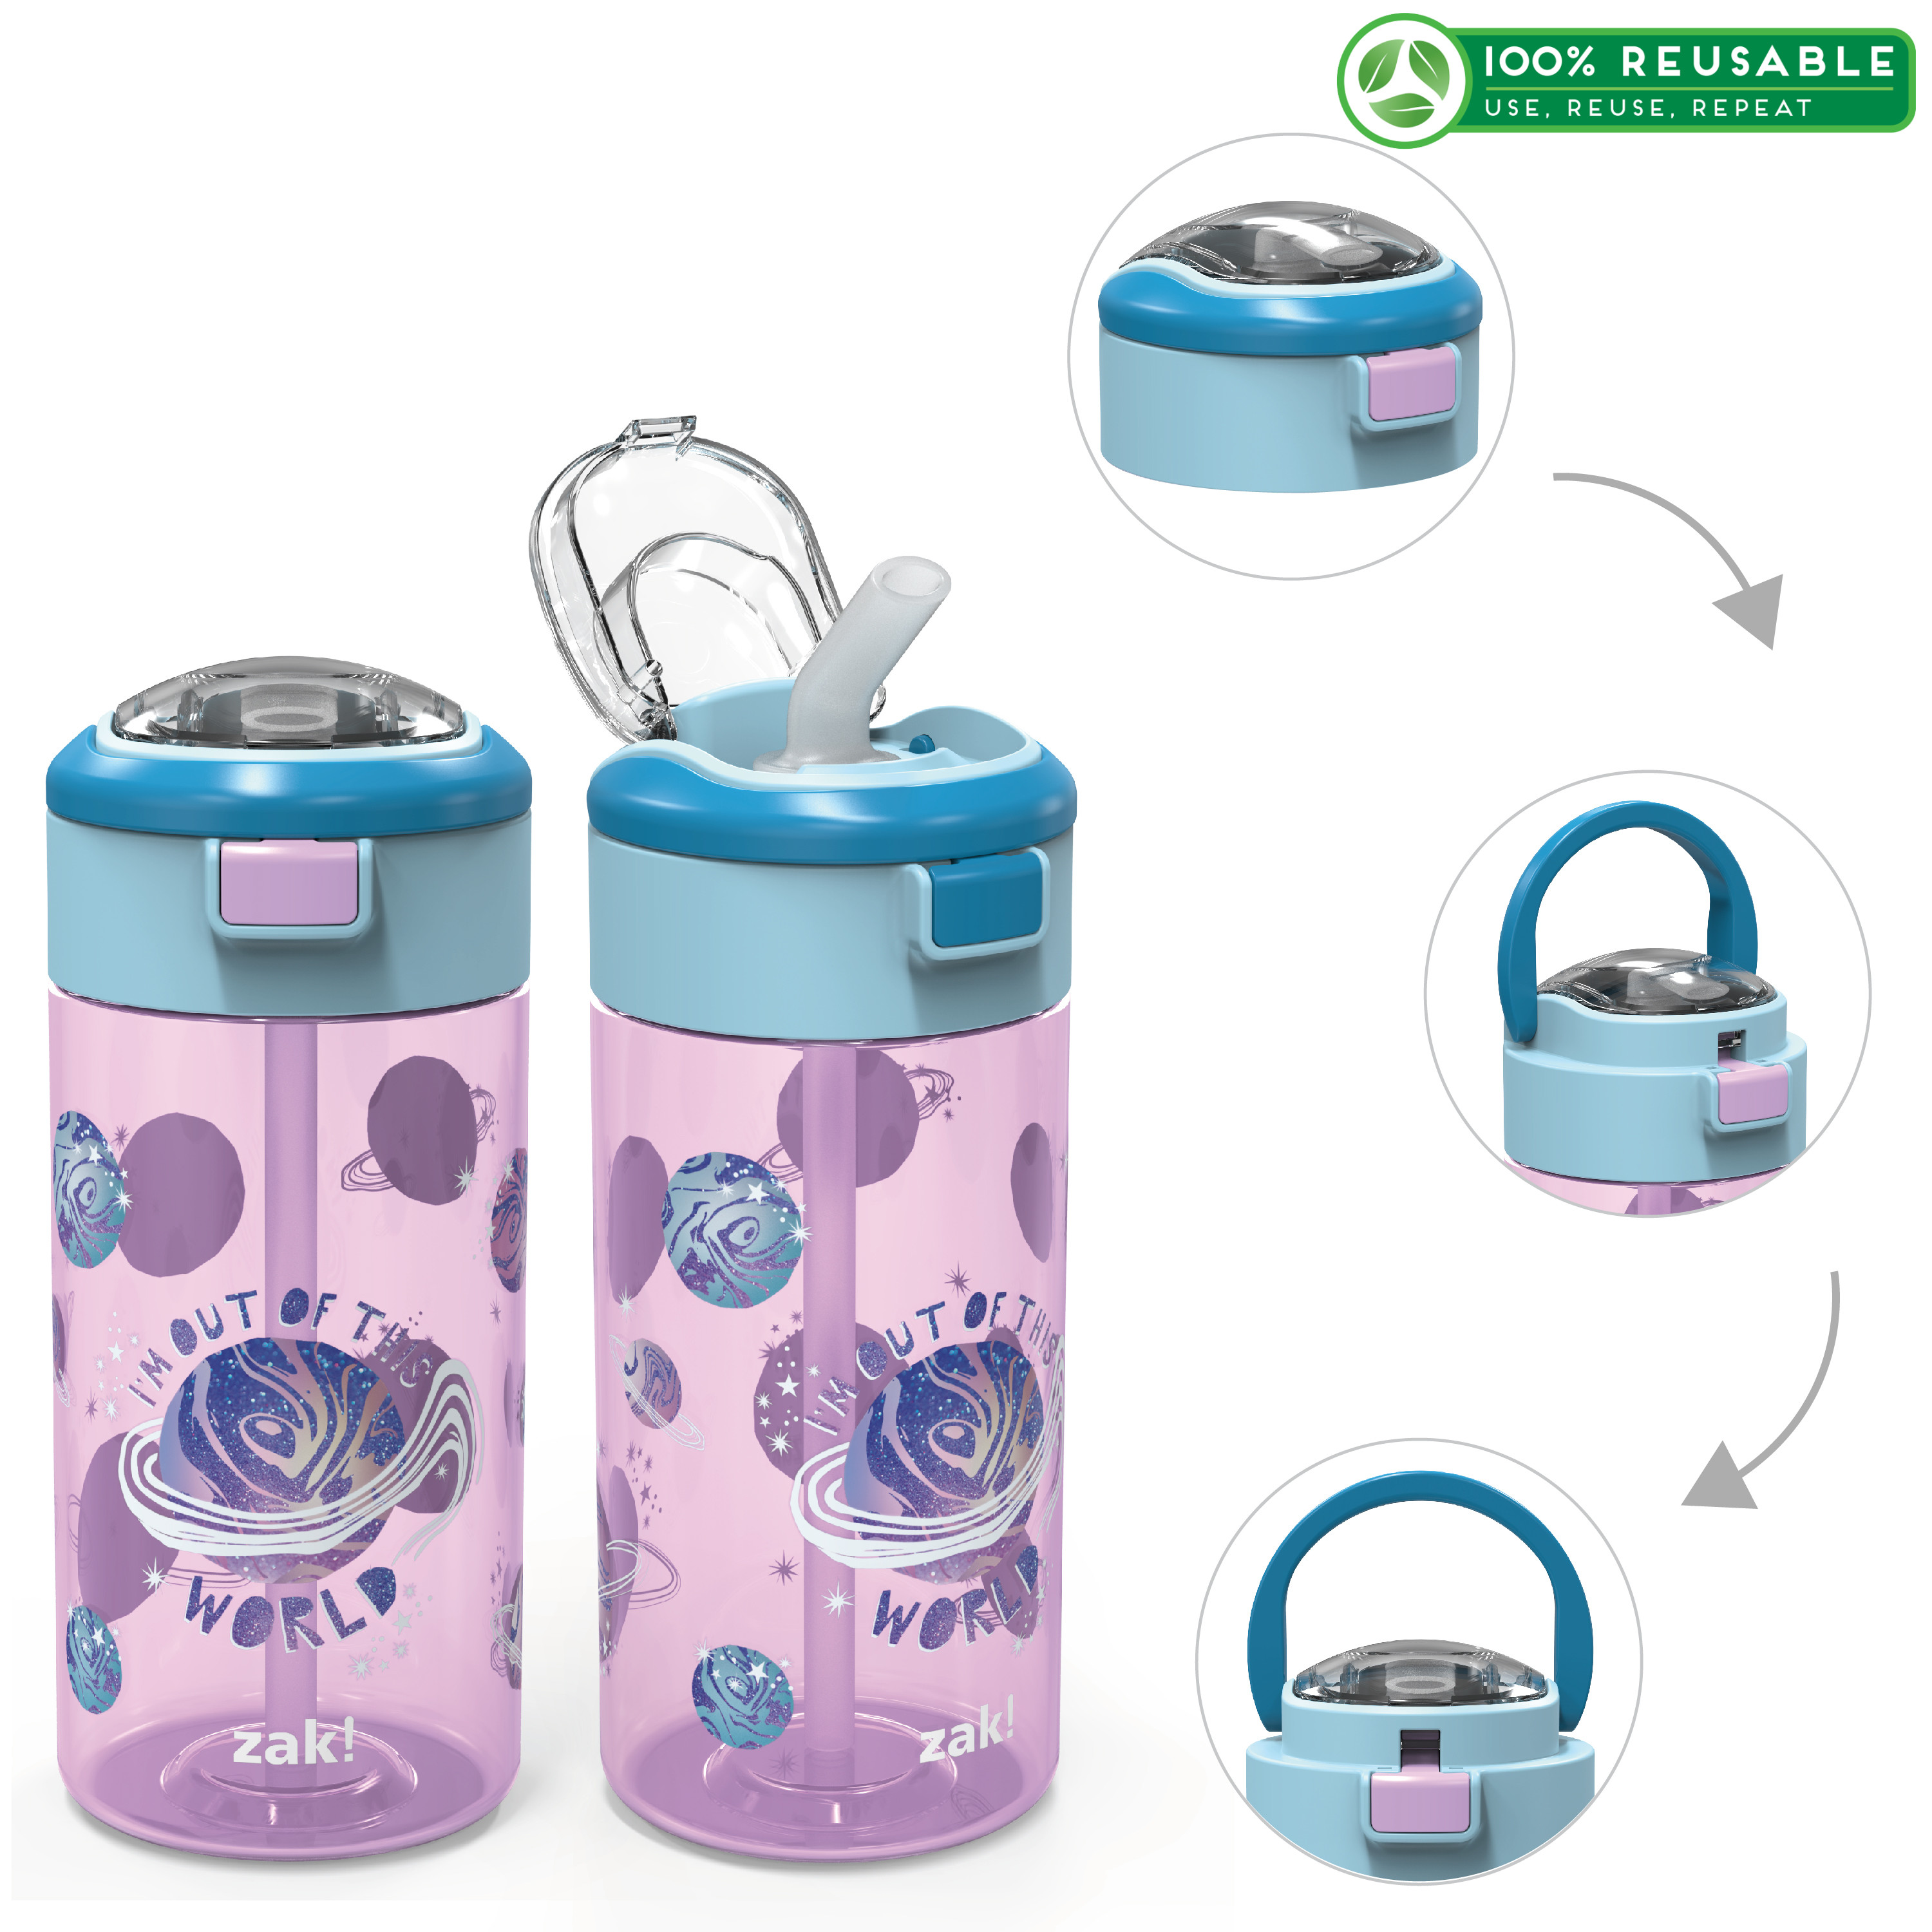 Genesis 18 ounce Water Bottles, Planet, 2-piece set slideshow image 1